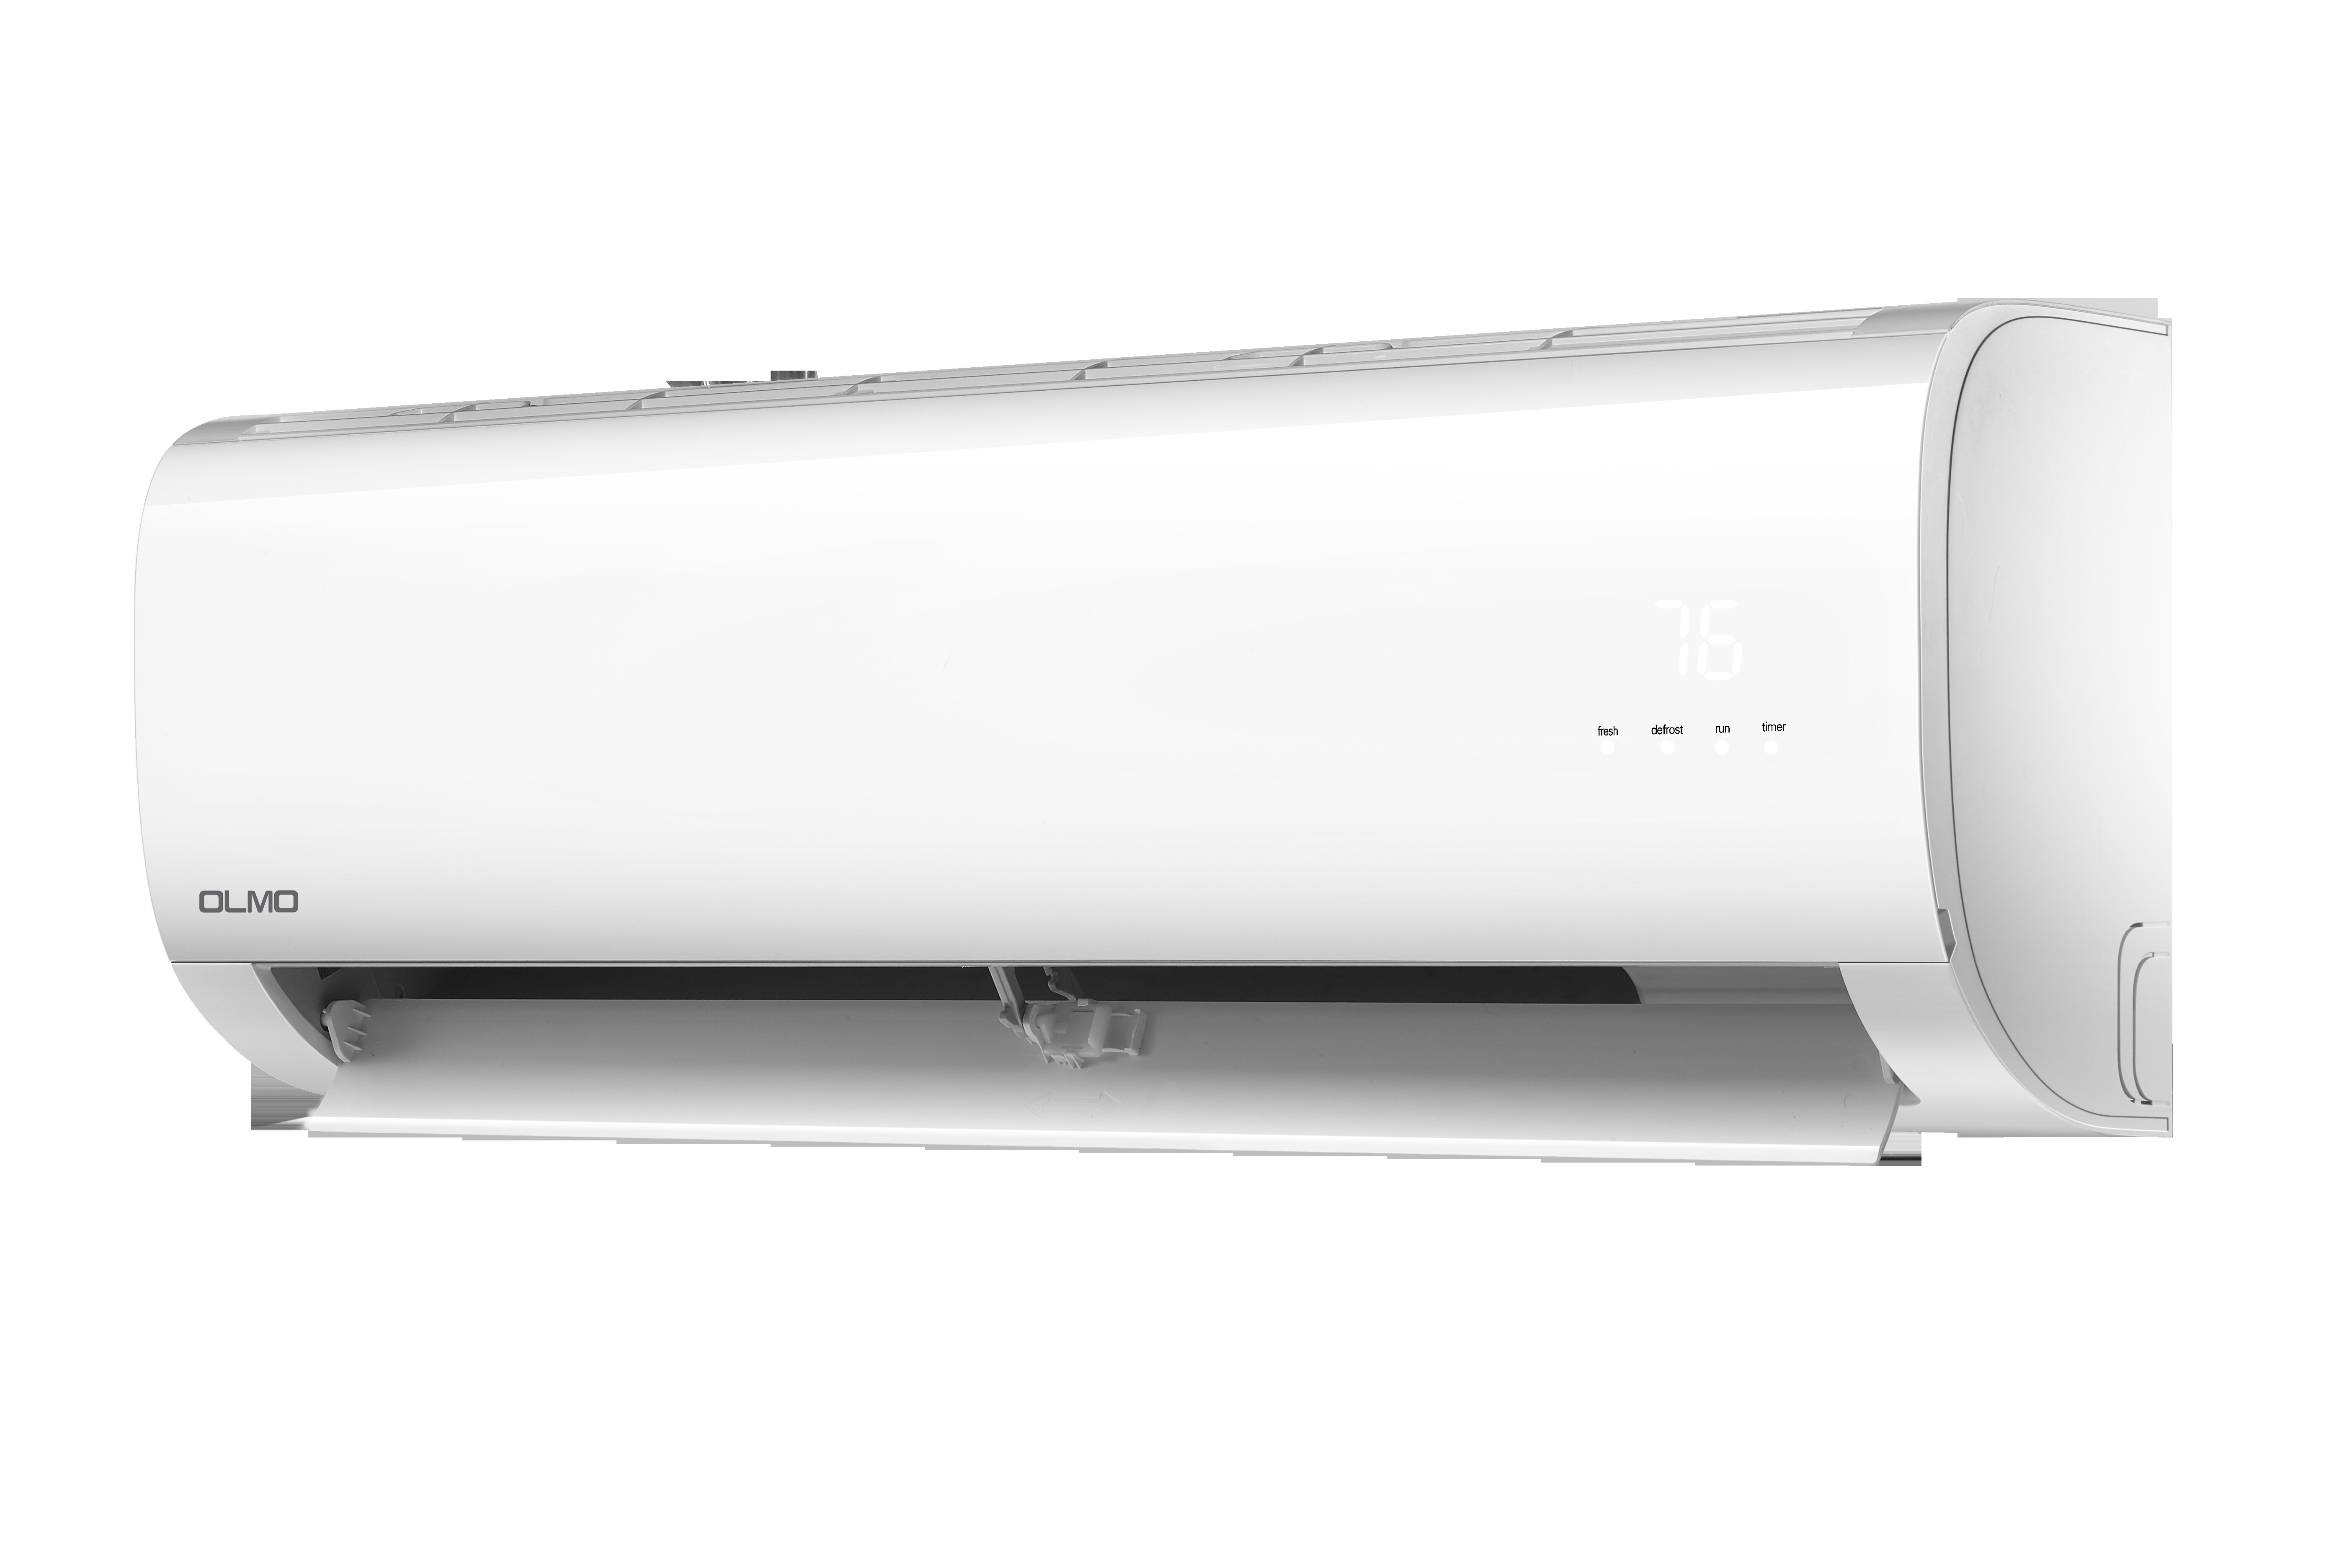 Alpic 12,000 BTU Ductless Mini Split Air Conditioner with Heater and on